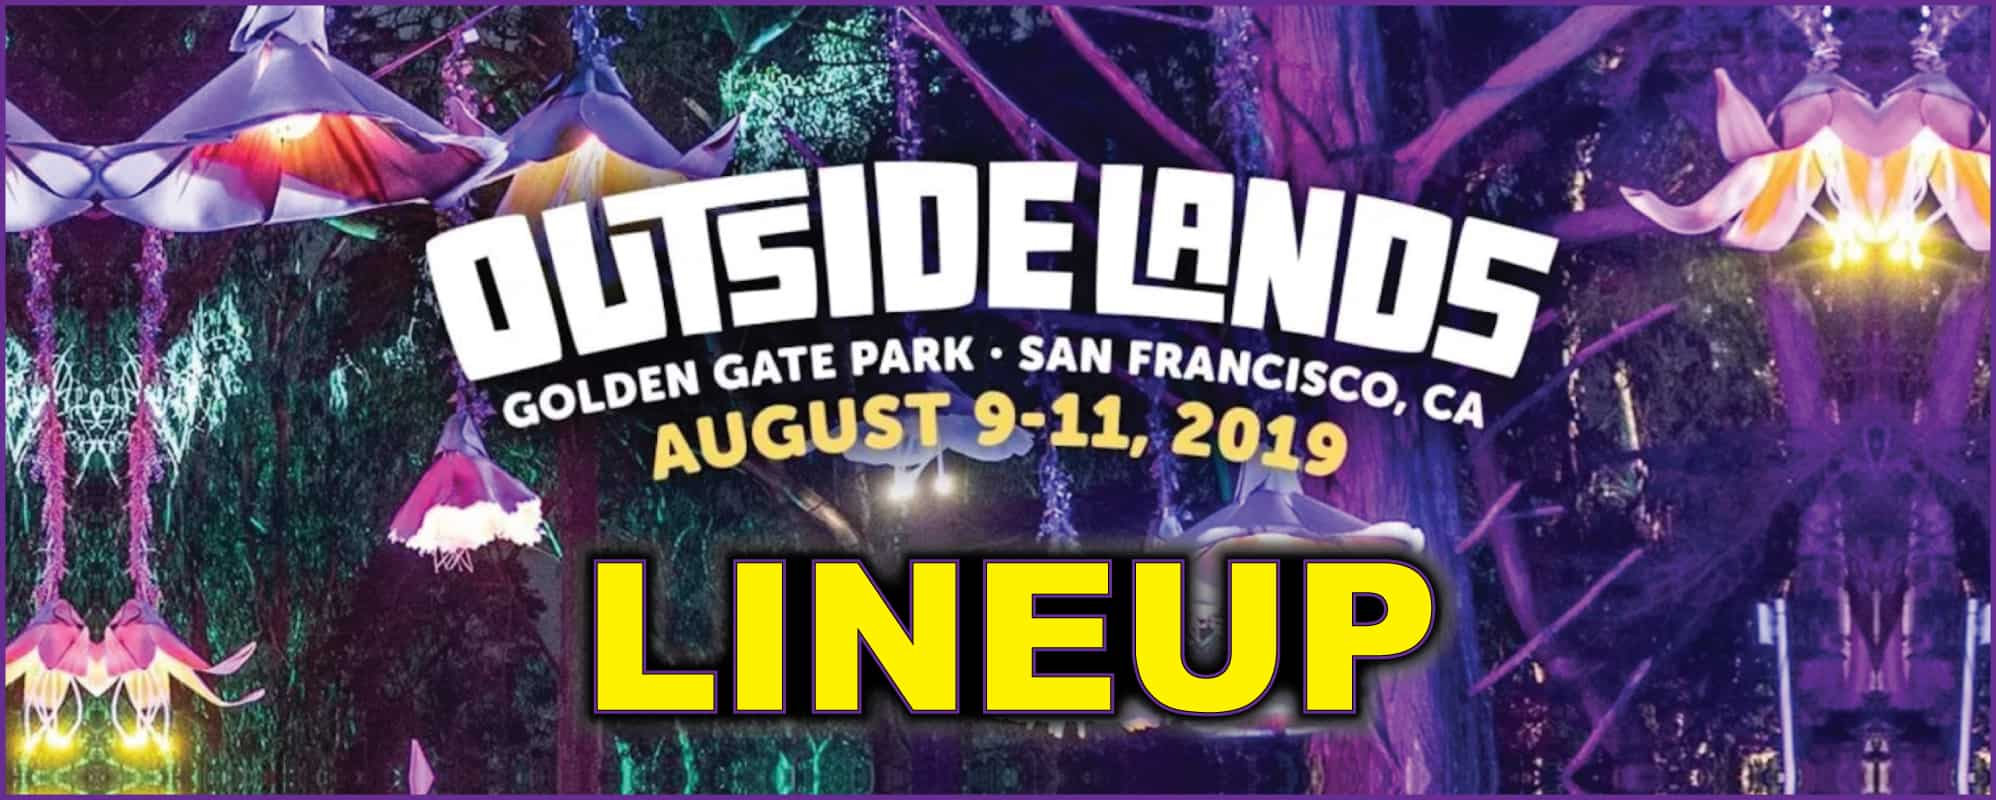 Outside Lands Lineup For 2019 Is Here